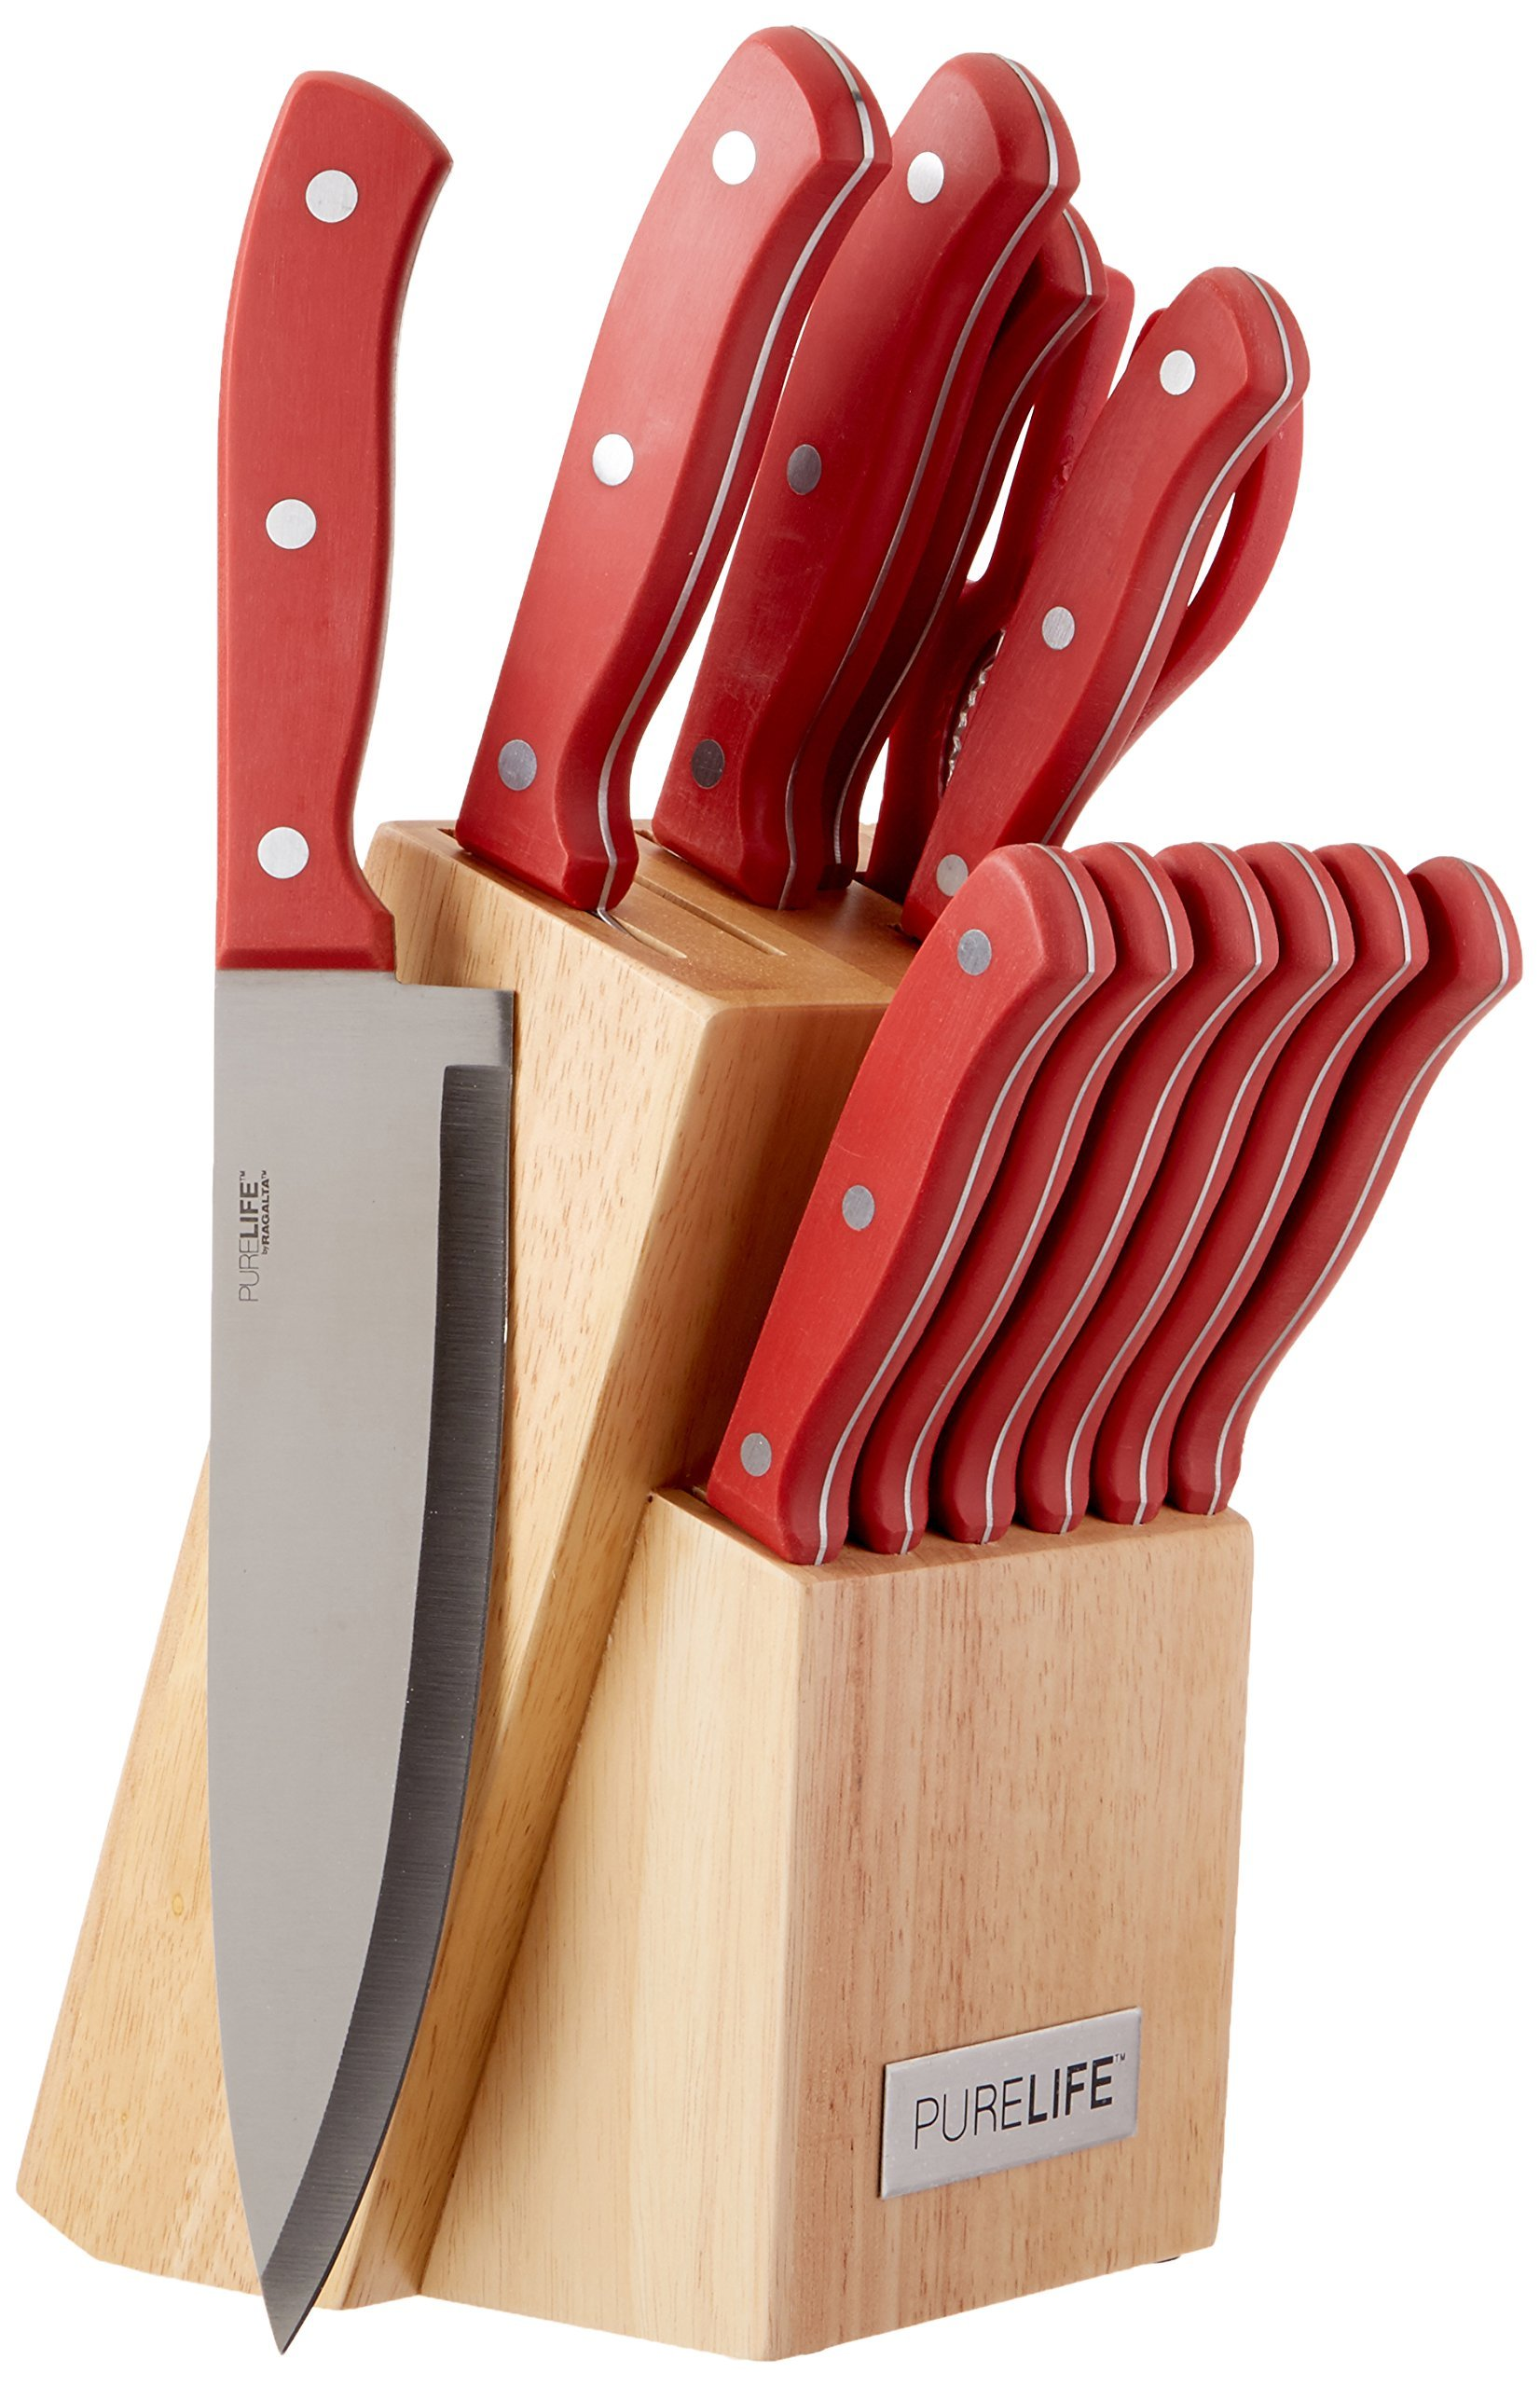 PureLife Ragalta PLKS 2111 Series 13-Piece High Carbon Stainless Steel Cutlery Set with Bakelite Handles and Block, Red